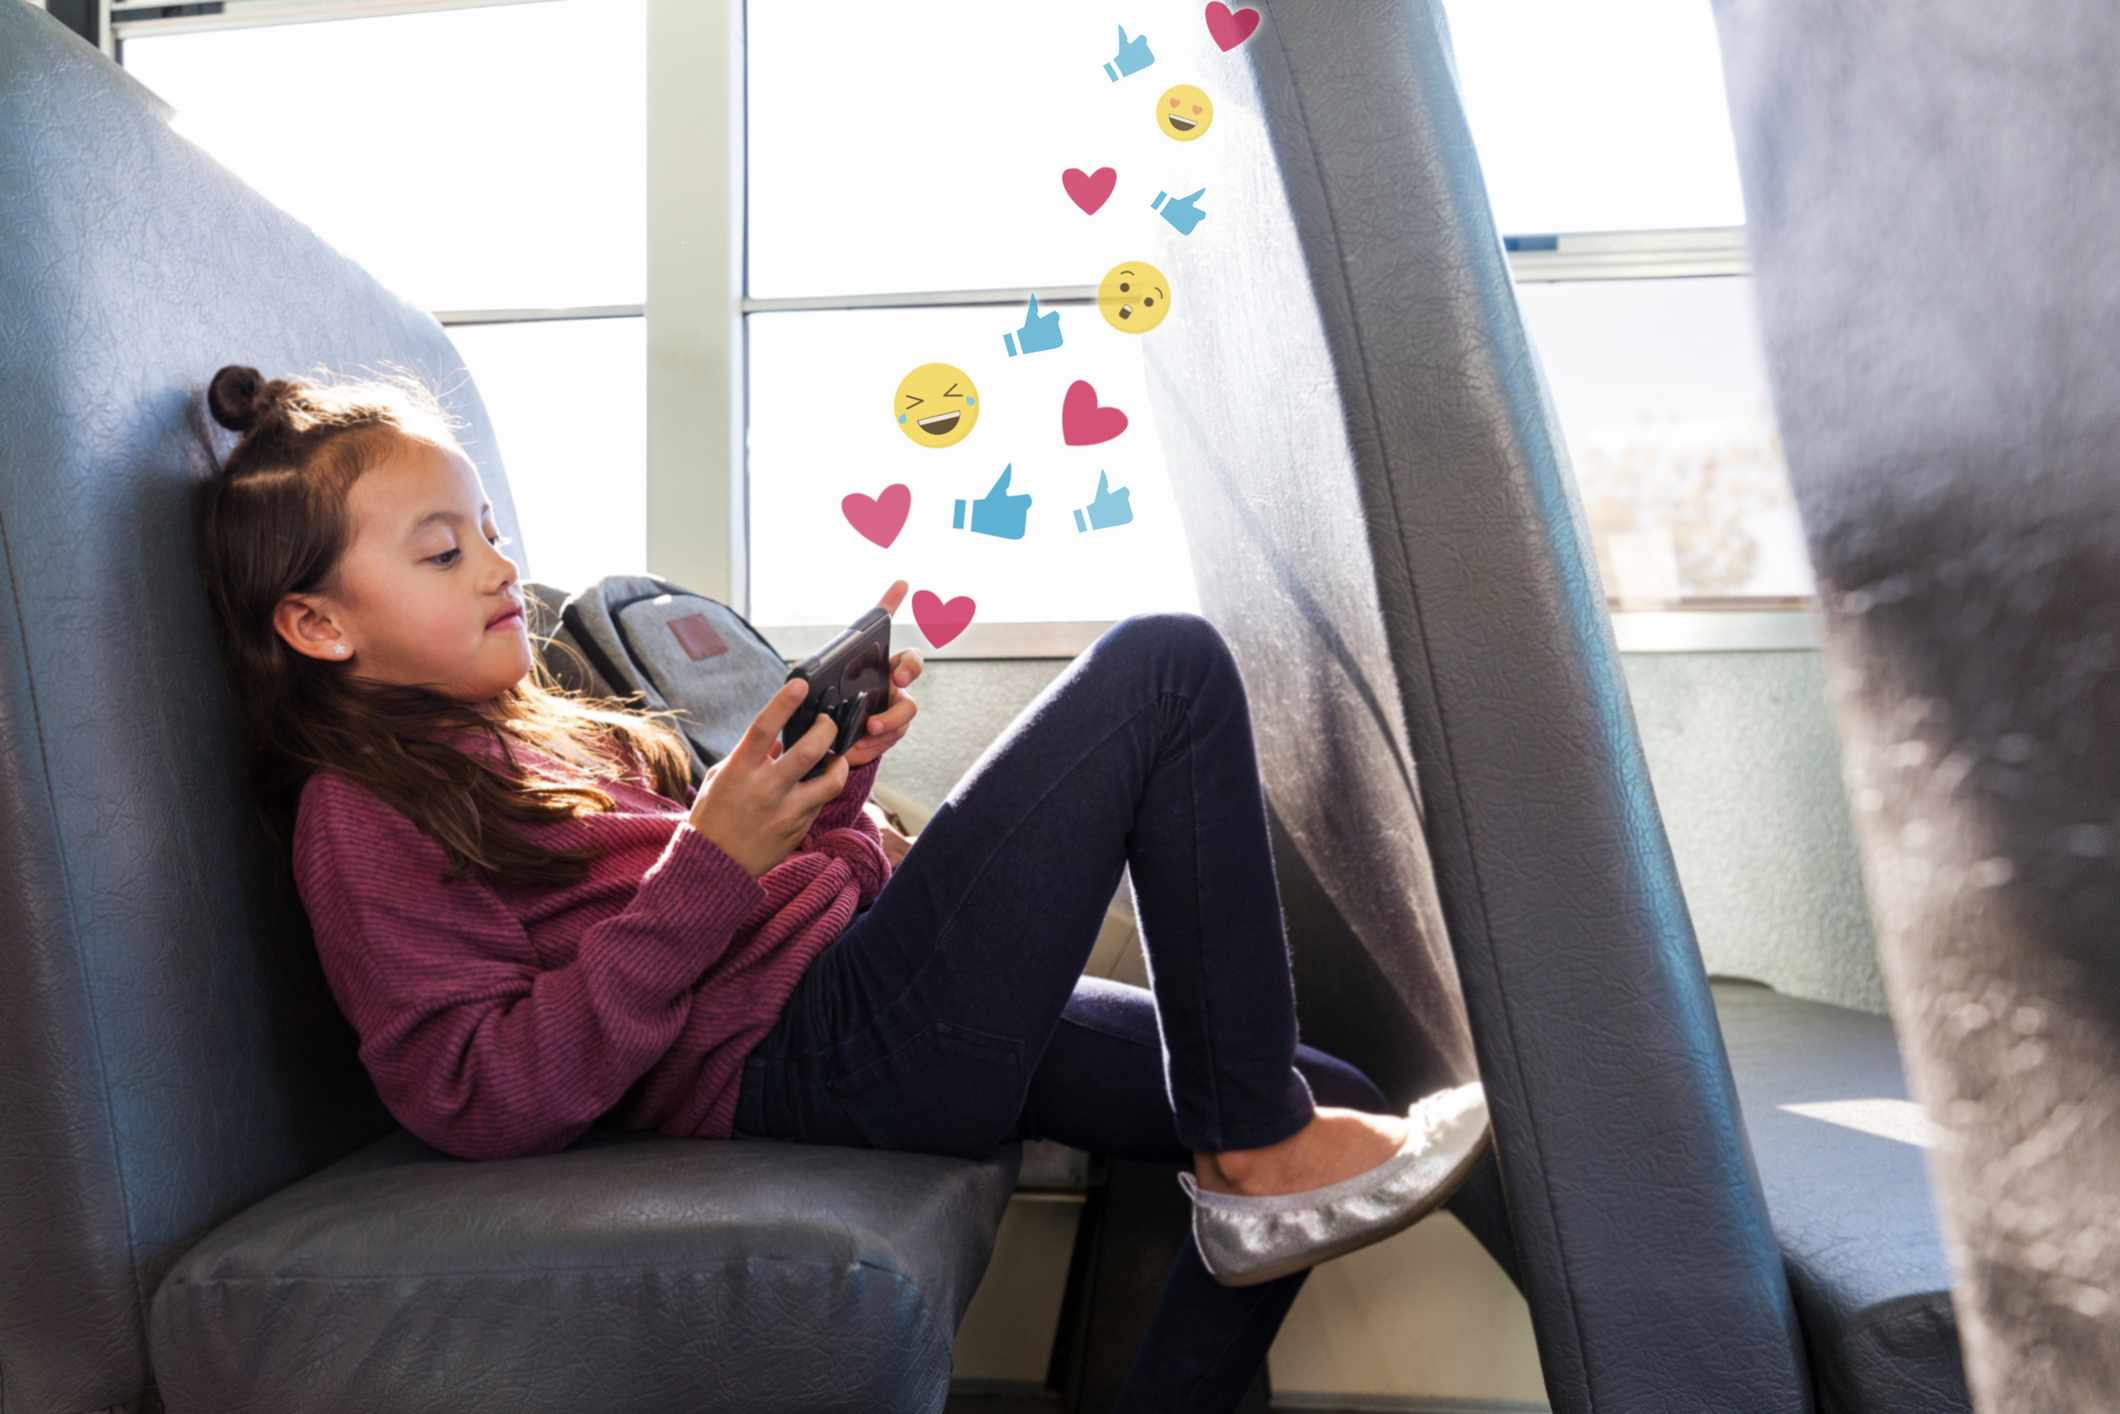 A child on a school bus looking at social media on a smartphone.